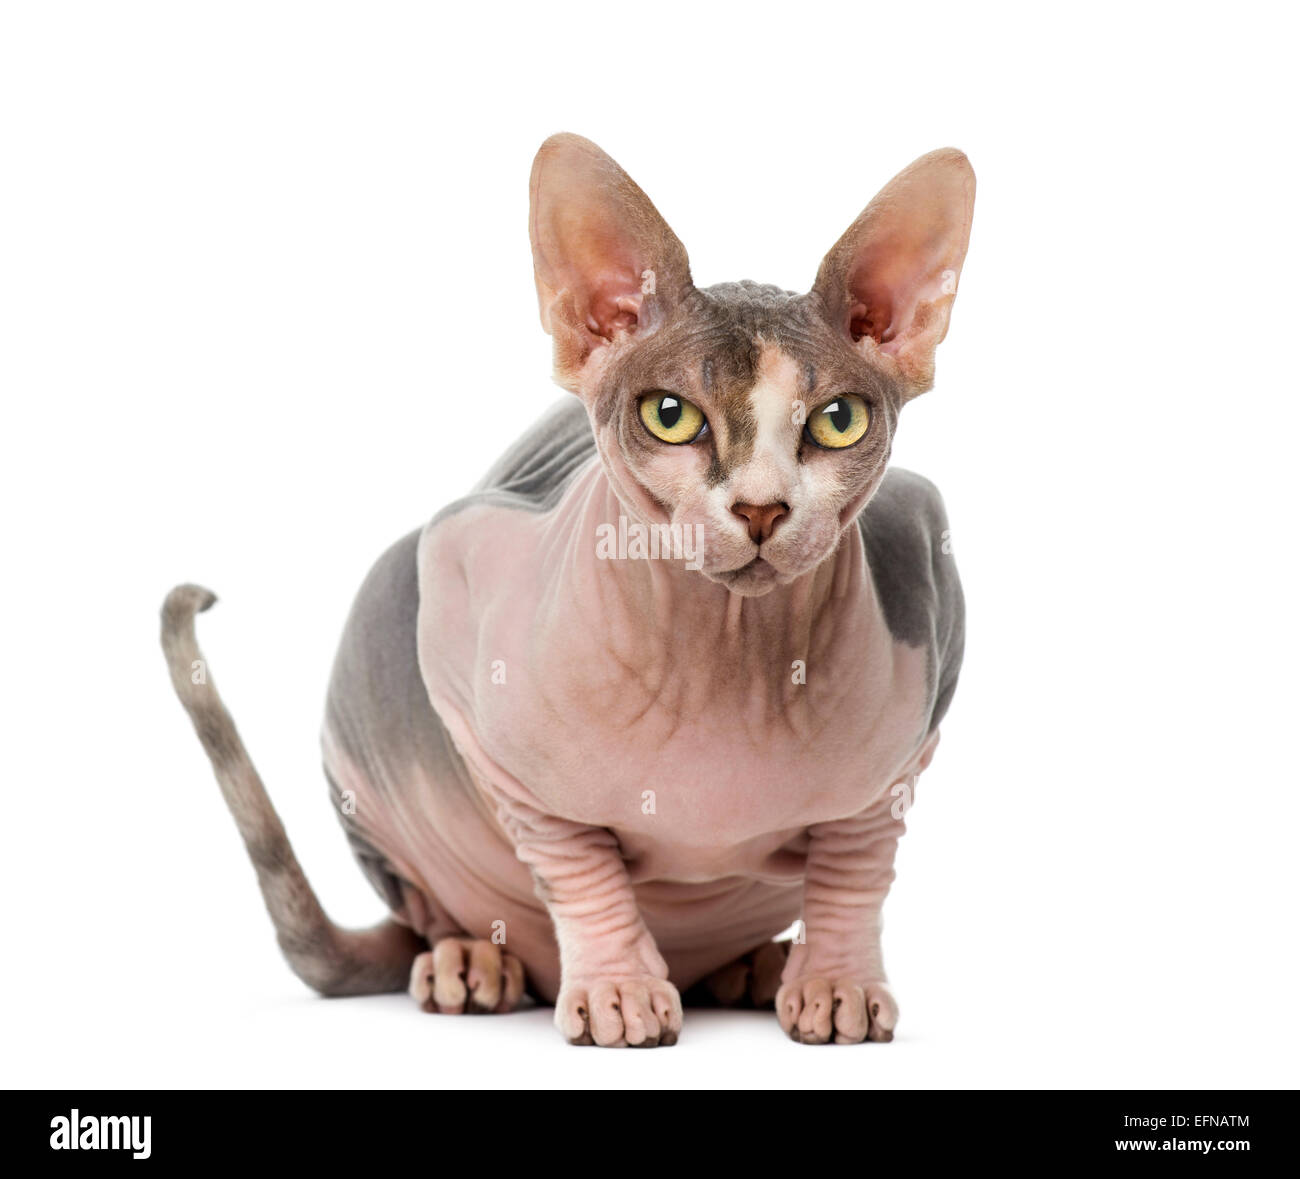 Sphynx (1 year old) against white background - Stock Image